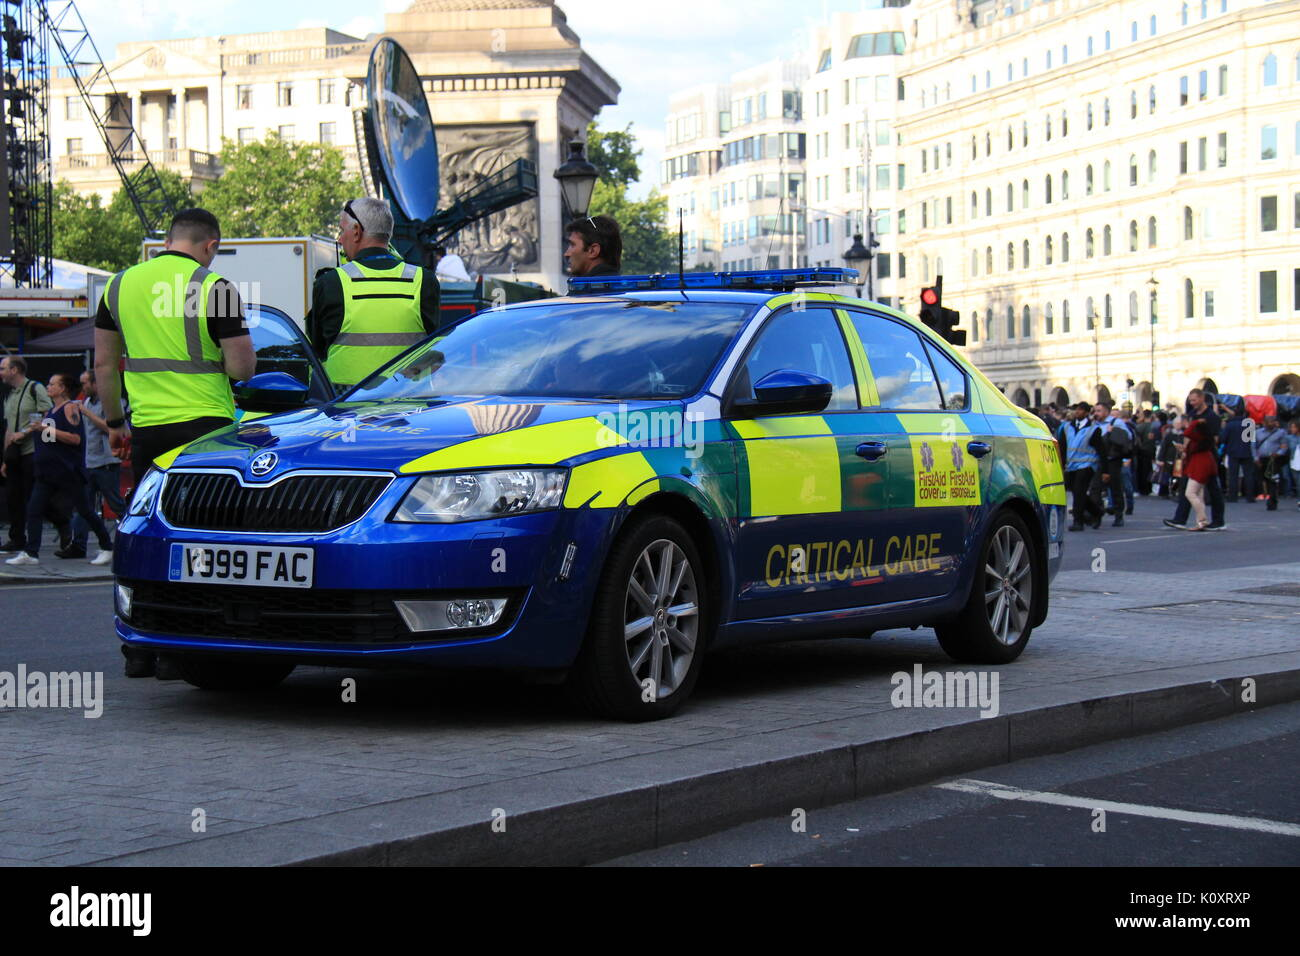 First Aid Cover Ltd Critical Care Response Car parked during the F1 Live London event - Stock Image